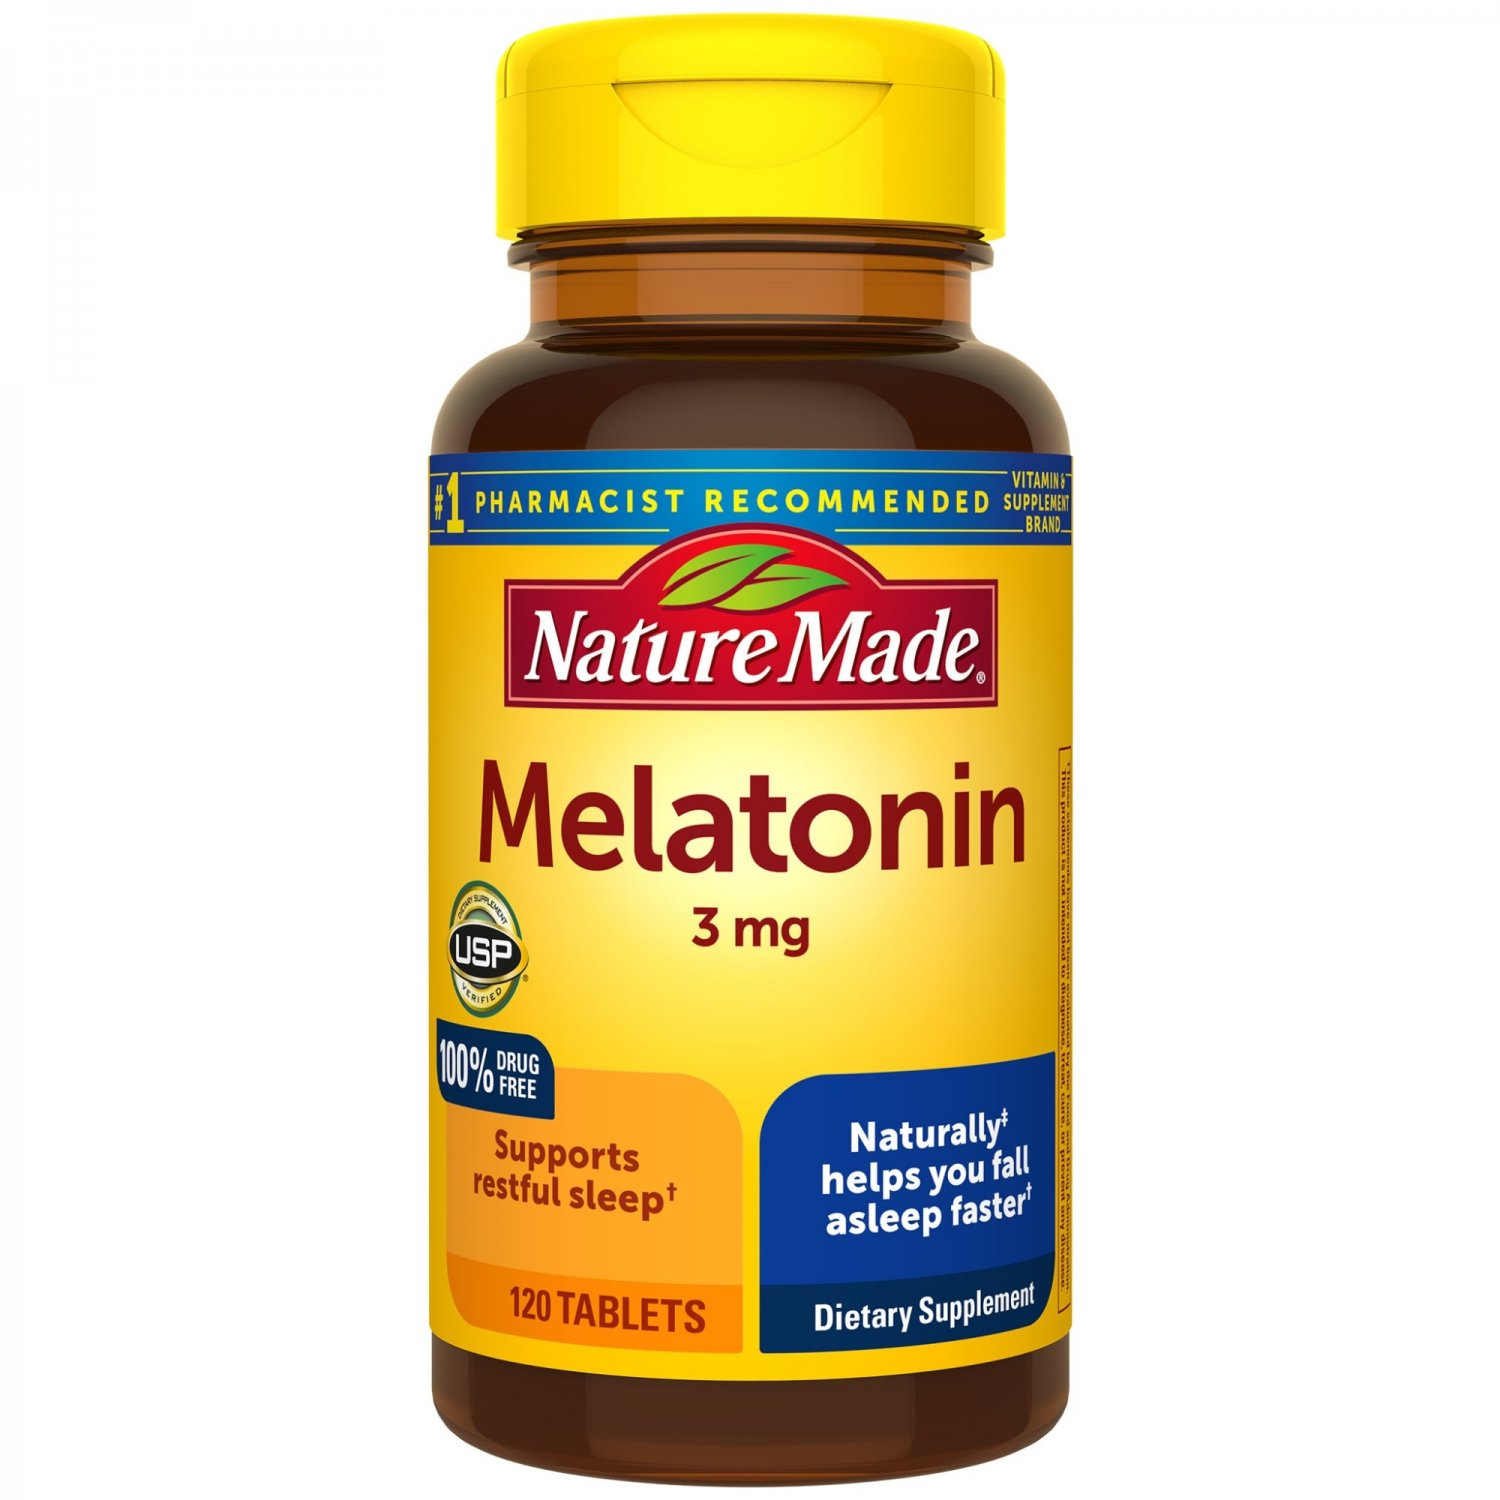 Nature Made Melatonin 3 mg for Supporting Restful Sleep 120 Tablets